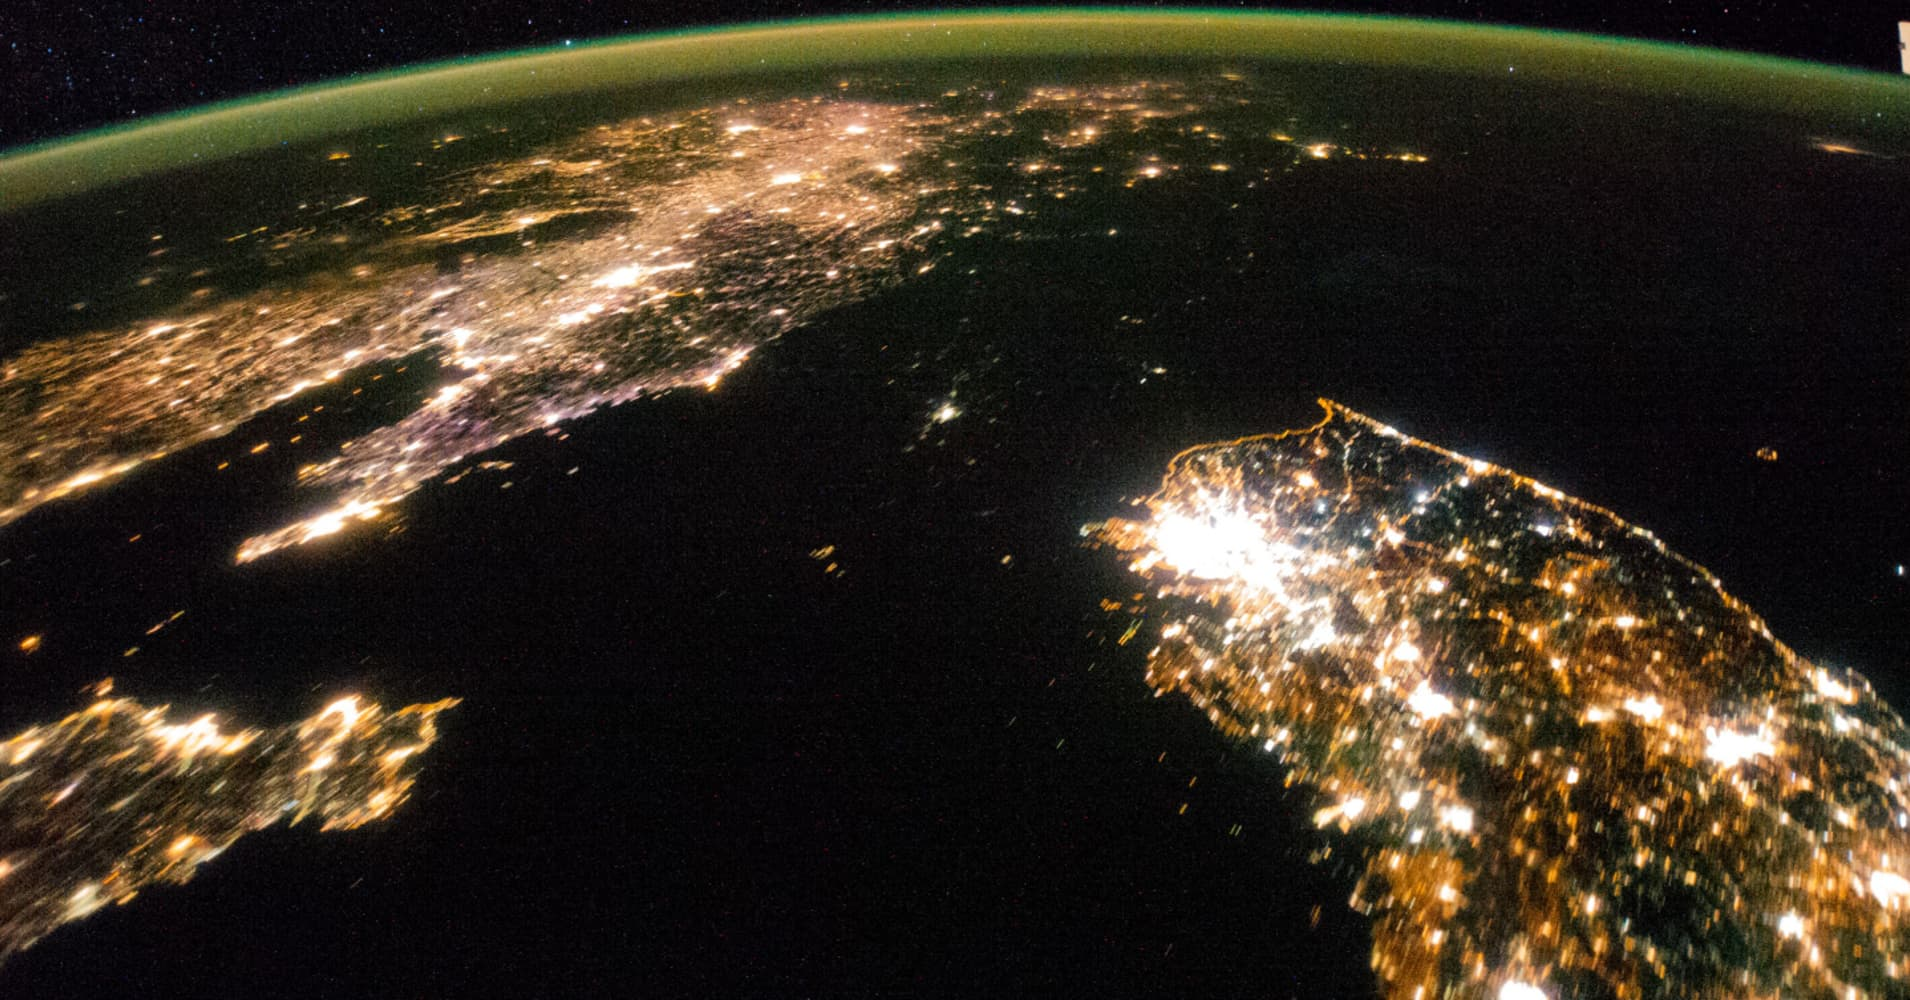 Flying over East Asia in January 2014, astronauts took this night image of the Korean peninsula. Dark North Korea is difficult to detect, between China and South Korea.